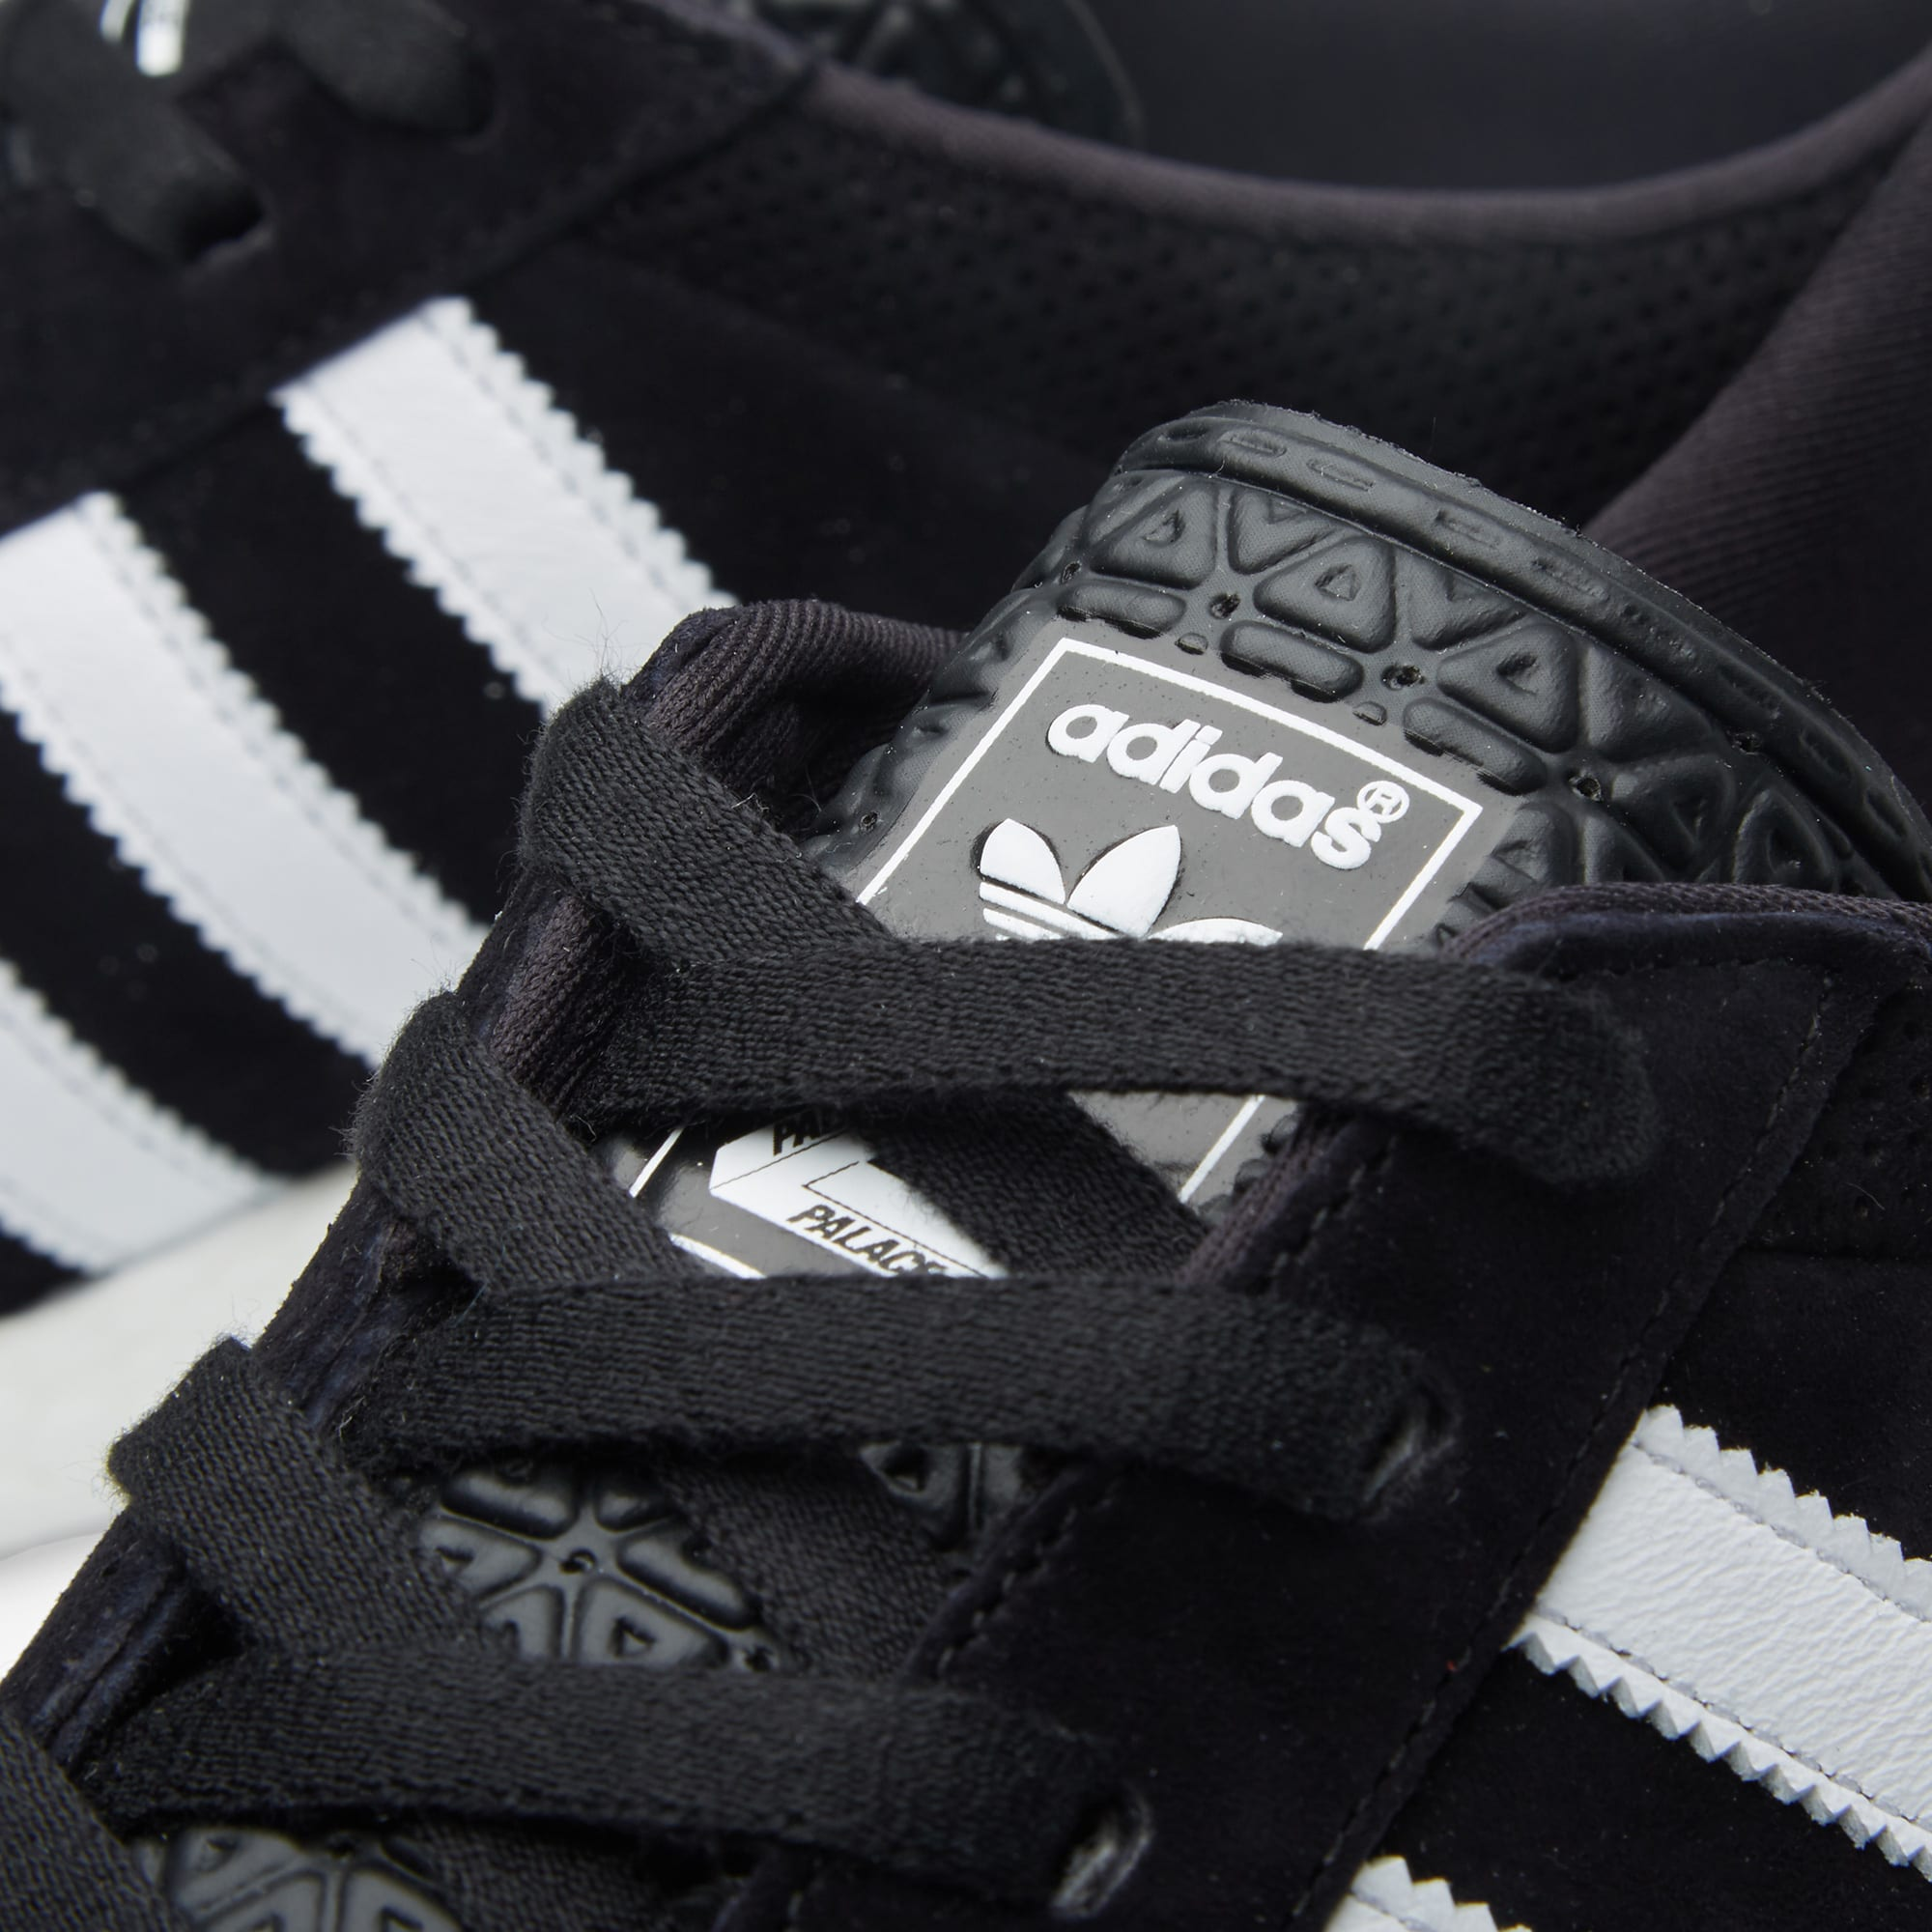 PALACE SKATEBOARDS X Adidas Originals Pro Boost Men's 8.5